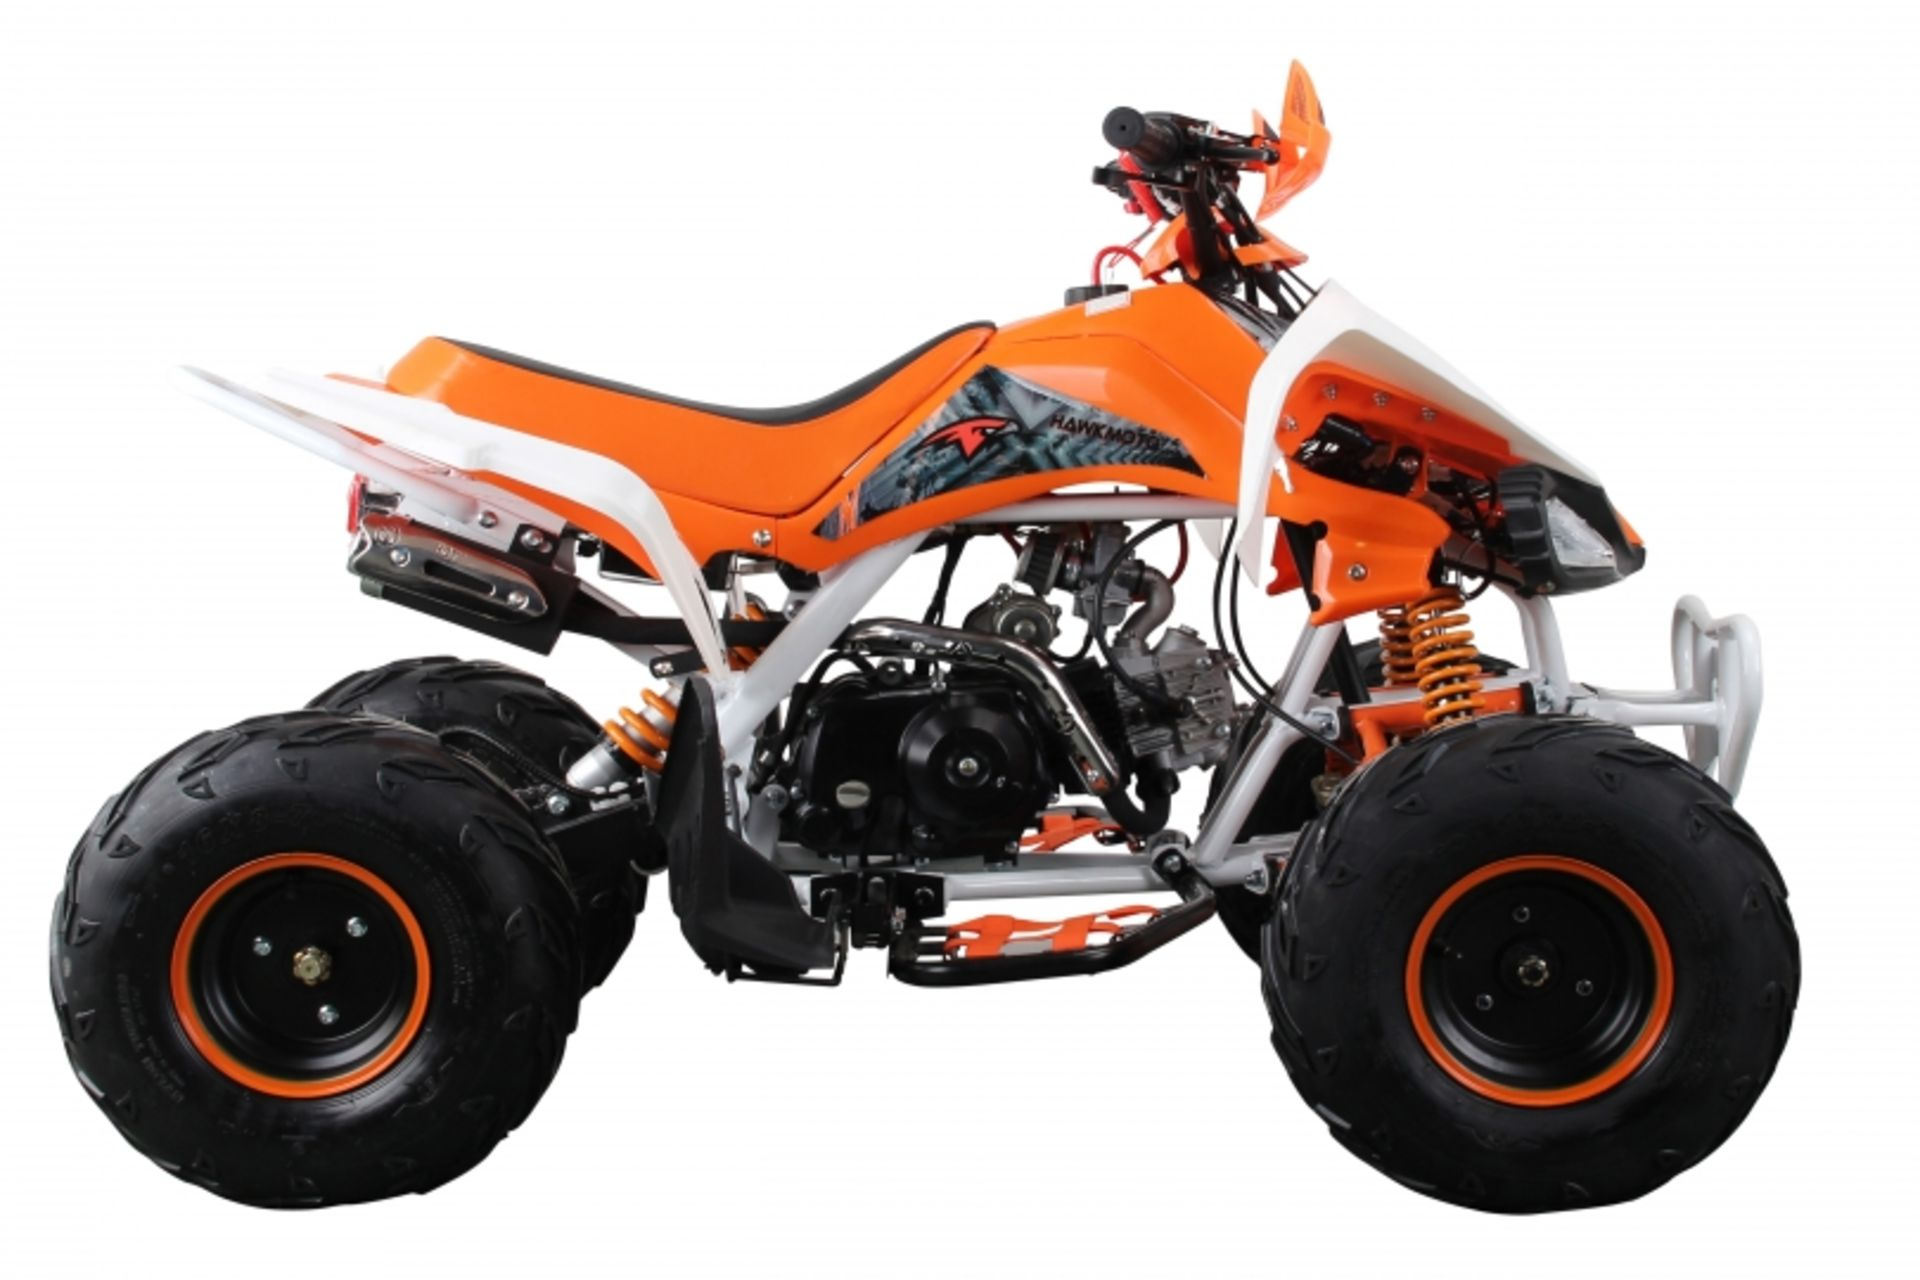 Lot 18024 - V Brand New 125cc Interceptor SV2 4 Stroke Quad Bike With Reverse Gear - Double Front Suspension/